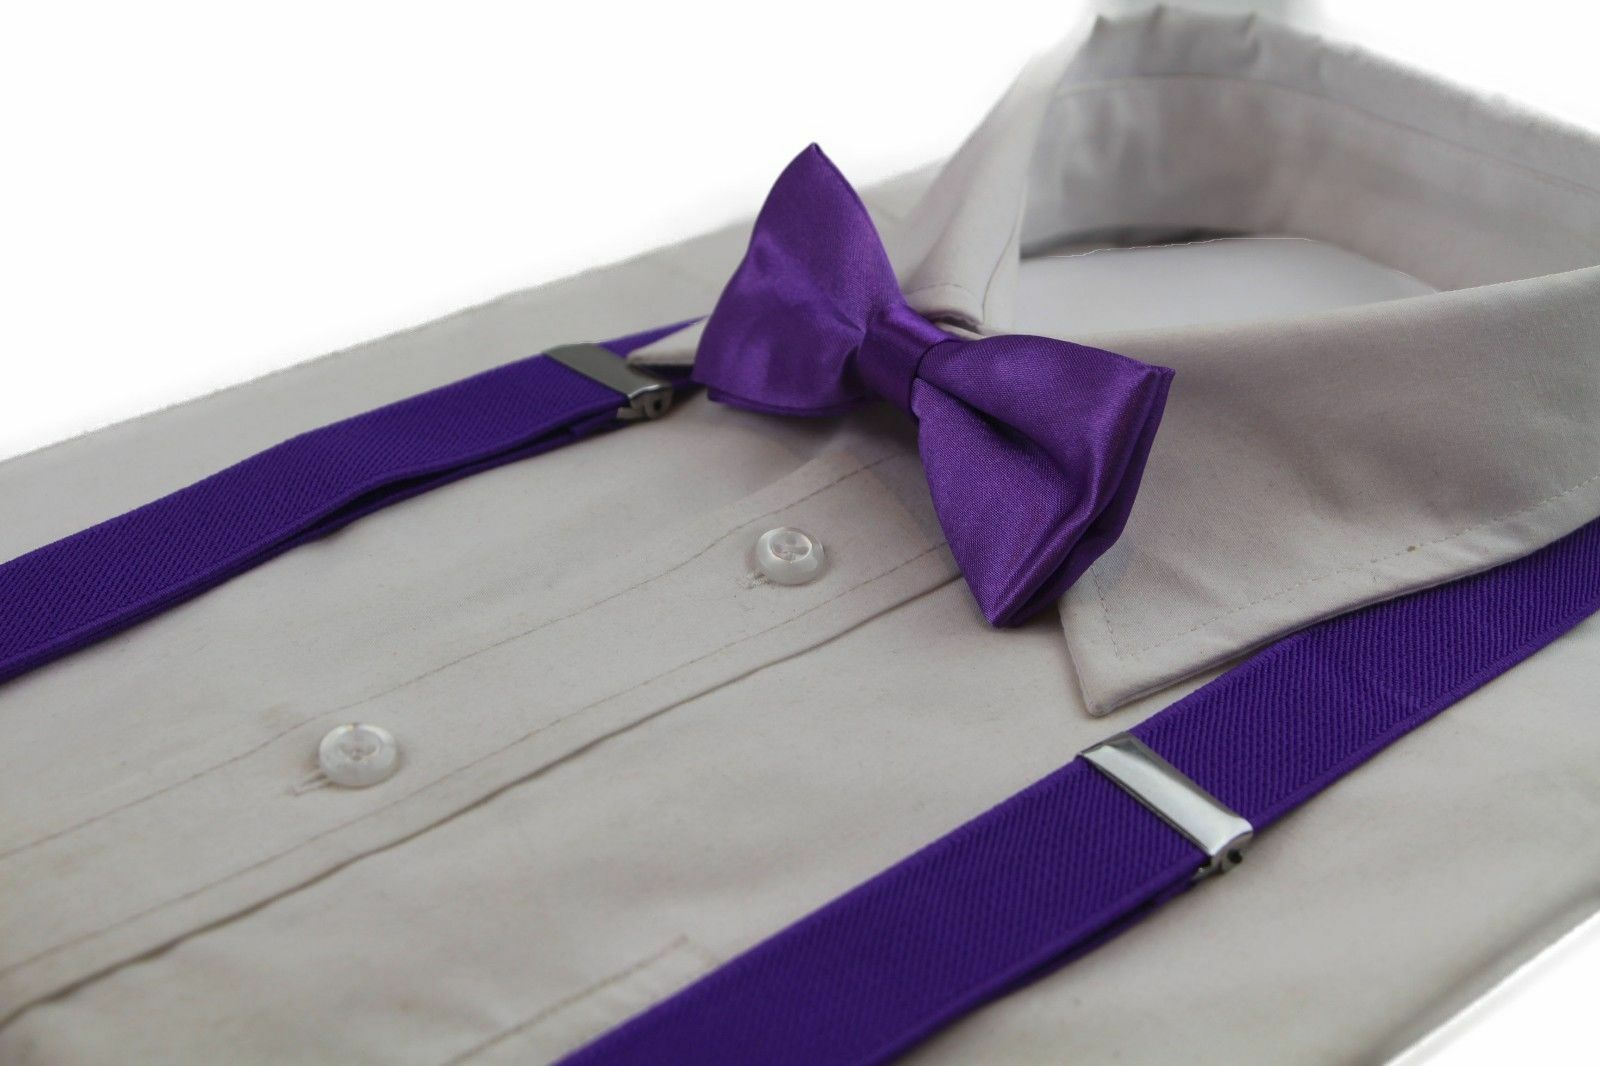 fafb1788424 Details about BOYS PURPLE MATCHING BOW TIE + SUSPENDER SET KIDS UNISEX  DRESS UP WEDDING PAGE